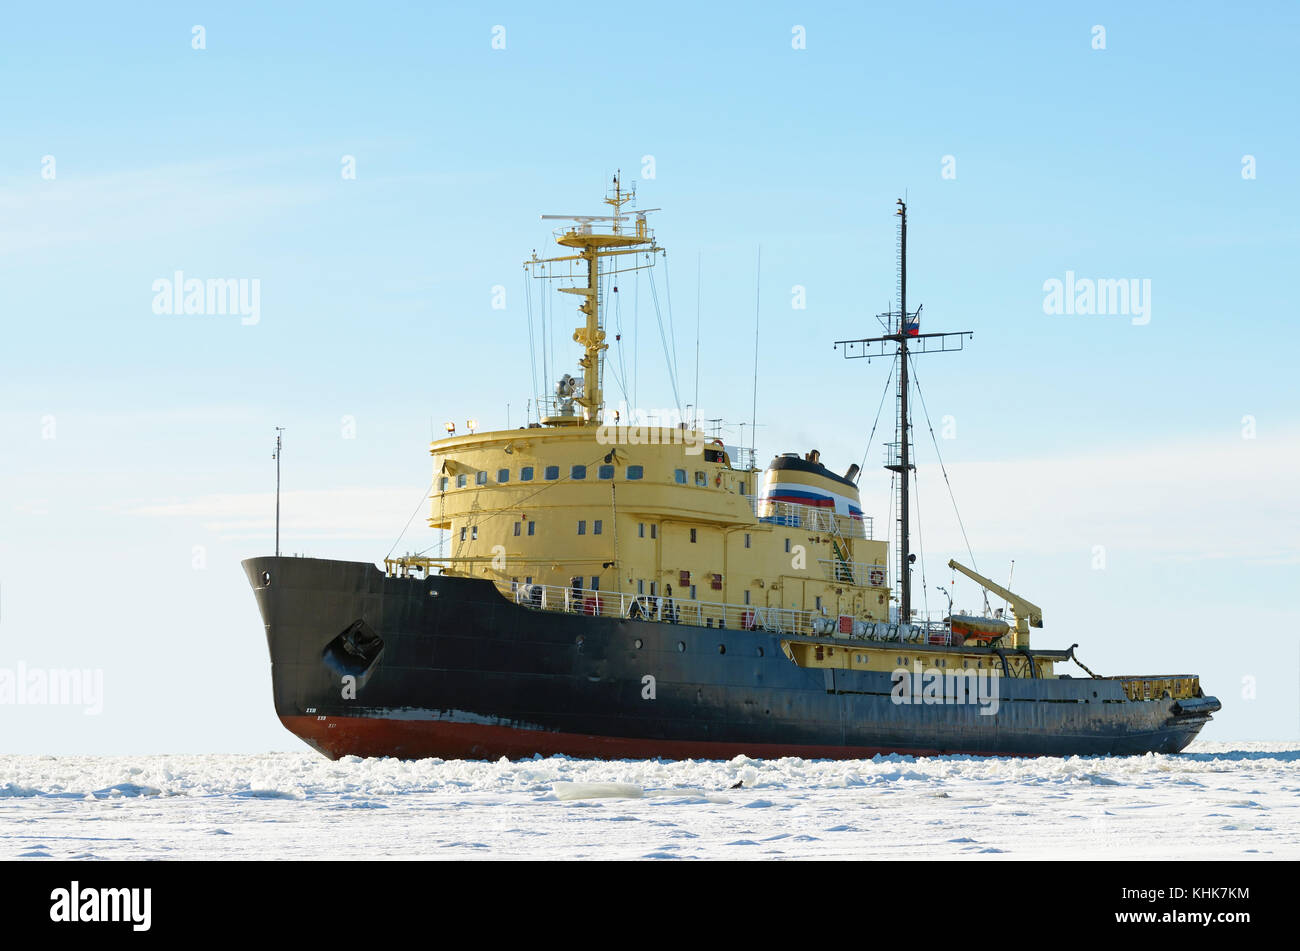 Nuclear-powered icebreaker is designed for breaking thick ice in the ocean. - Stock Image